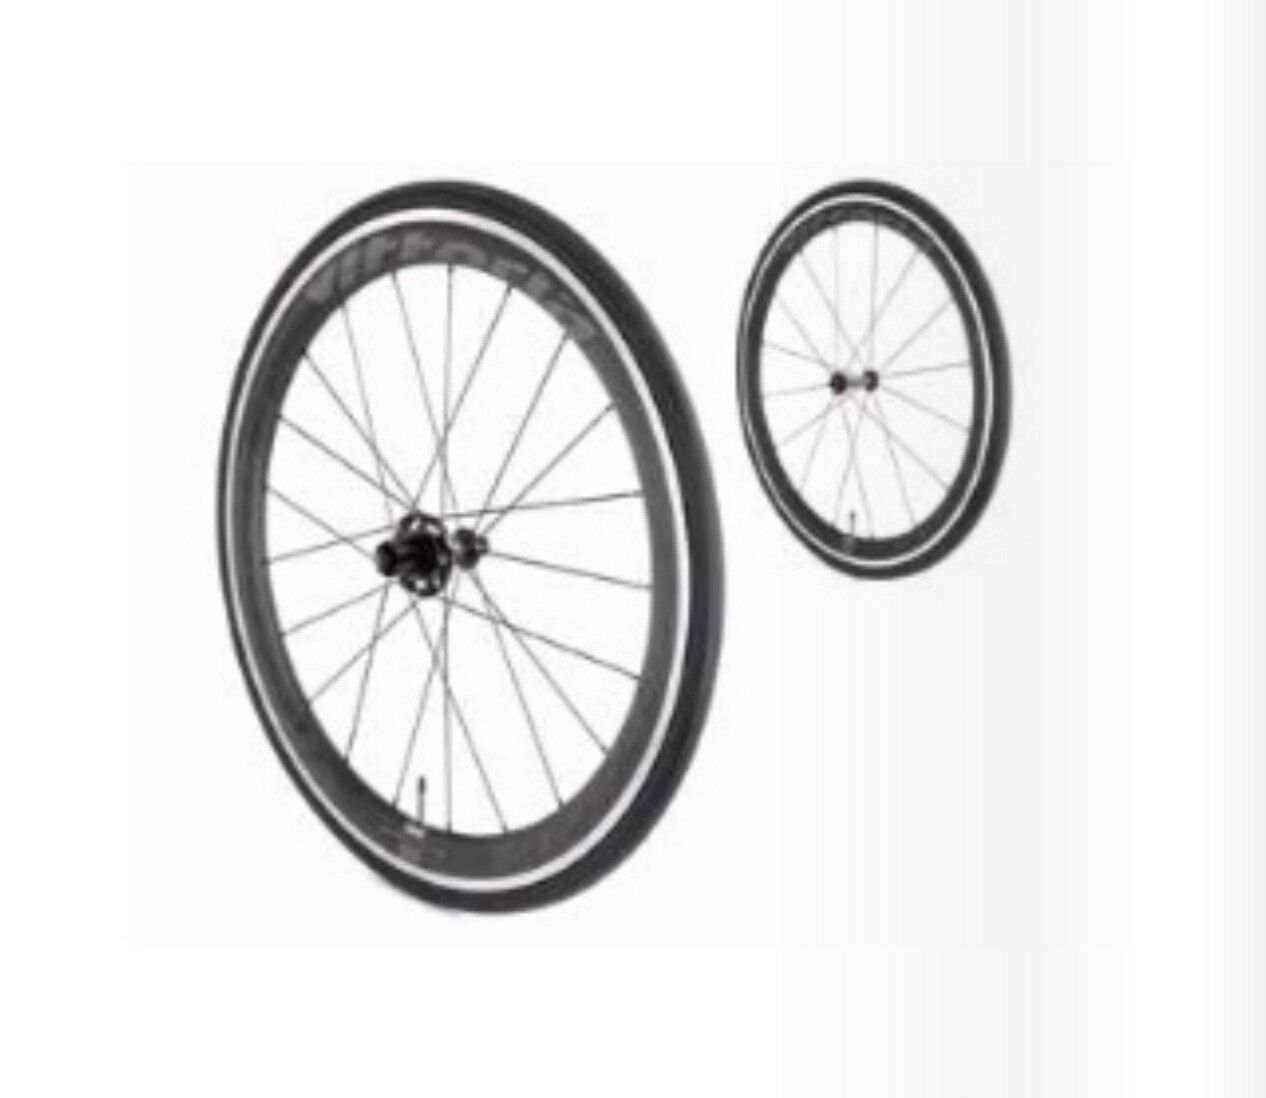 PAIRE  ROUES VÉLO VITTORIA ROAD FRAXION JANTE course Carbone course  wholesale price and reliable quality